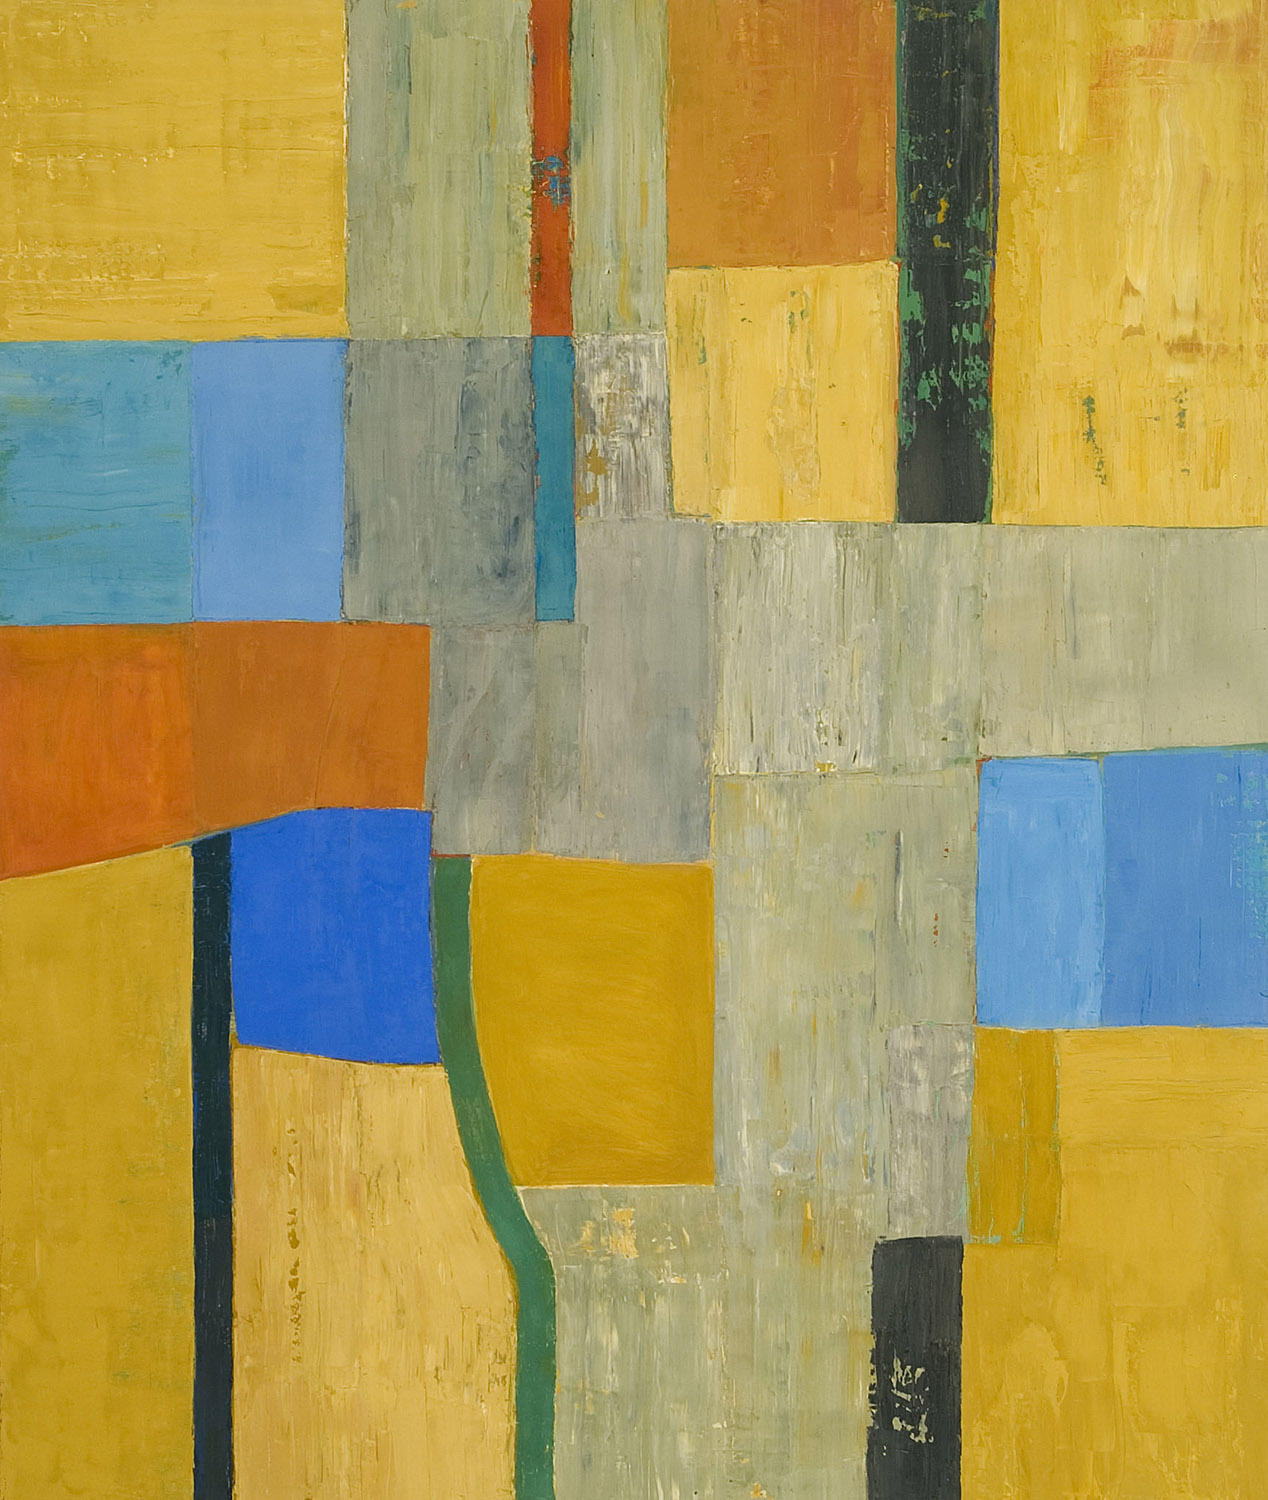 FIESOLE  •  oil on wood  •  52 by 44 inches  •  2006